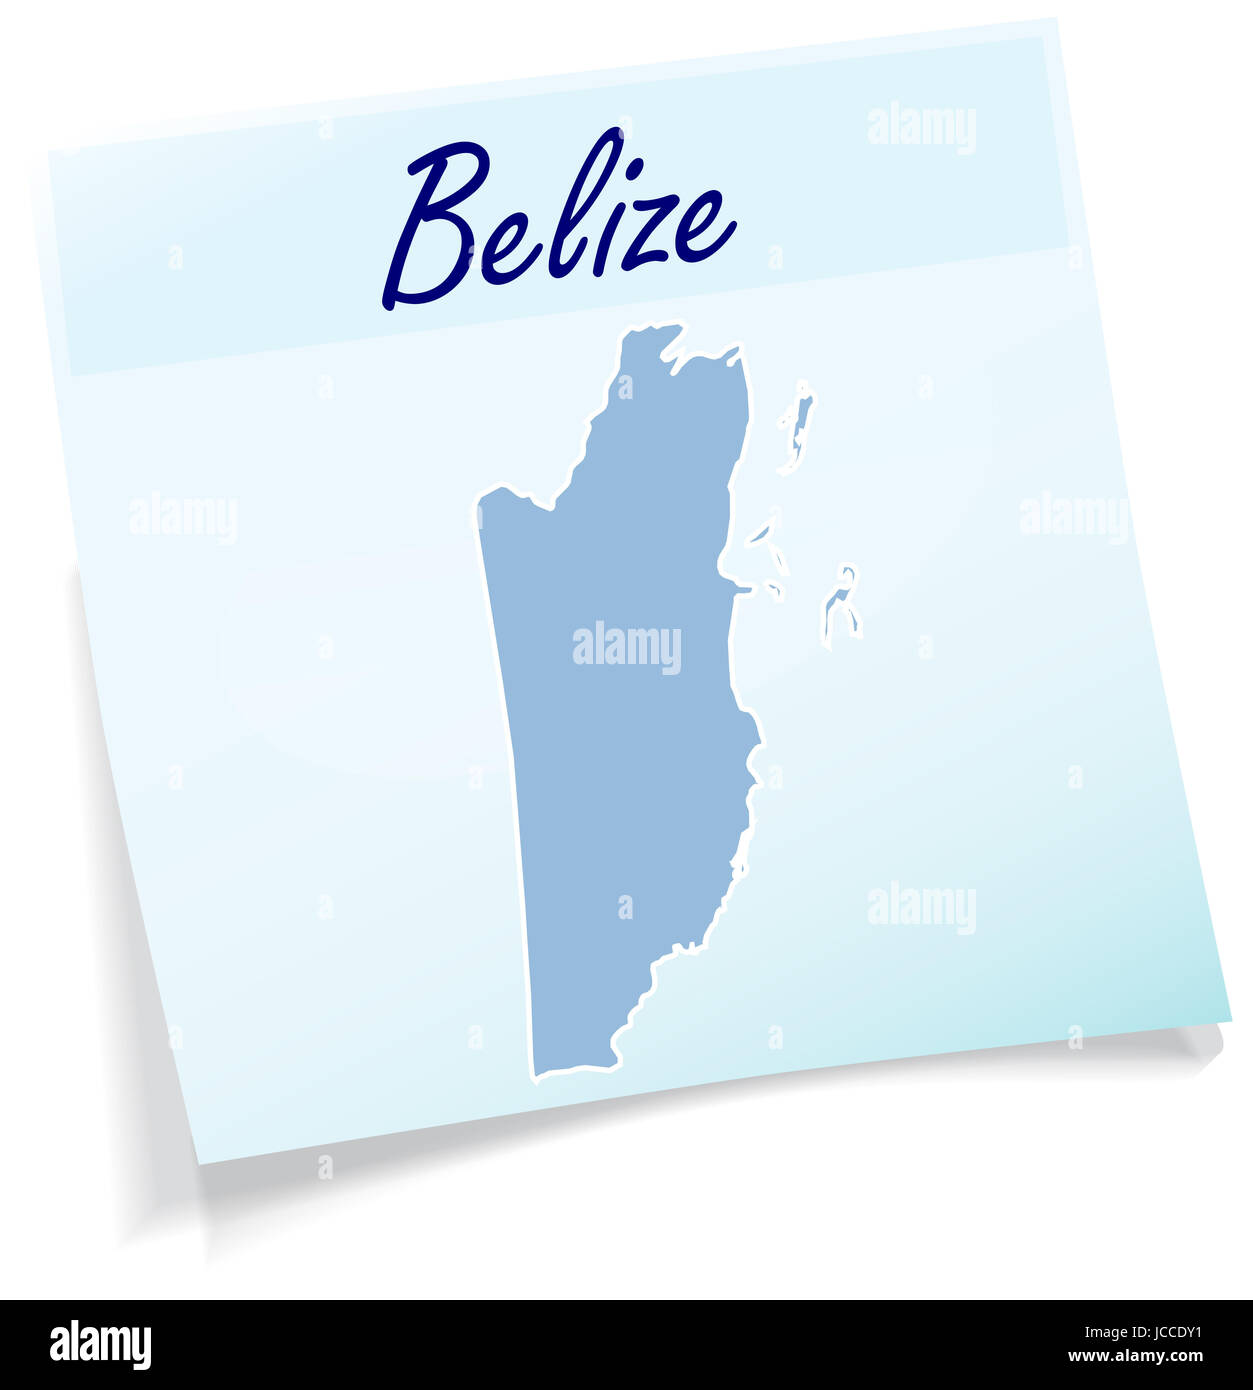 Belize Karte.Karte Von Belize Stock Photos Karte Von Belize Stock